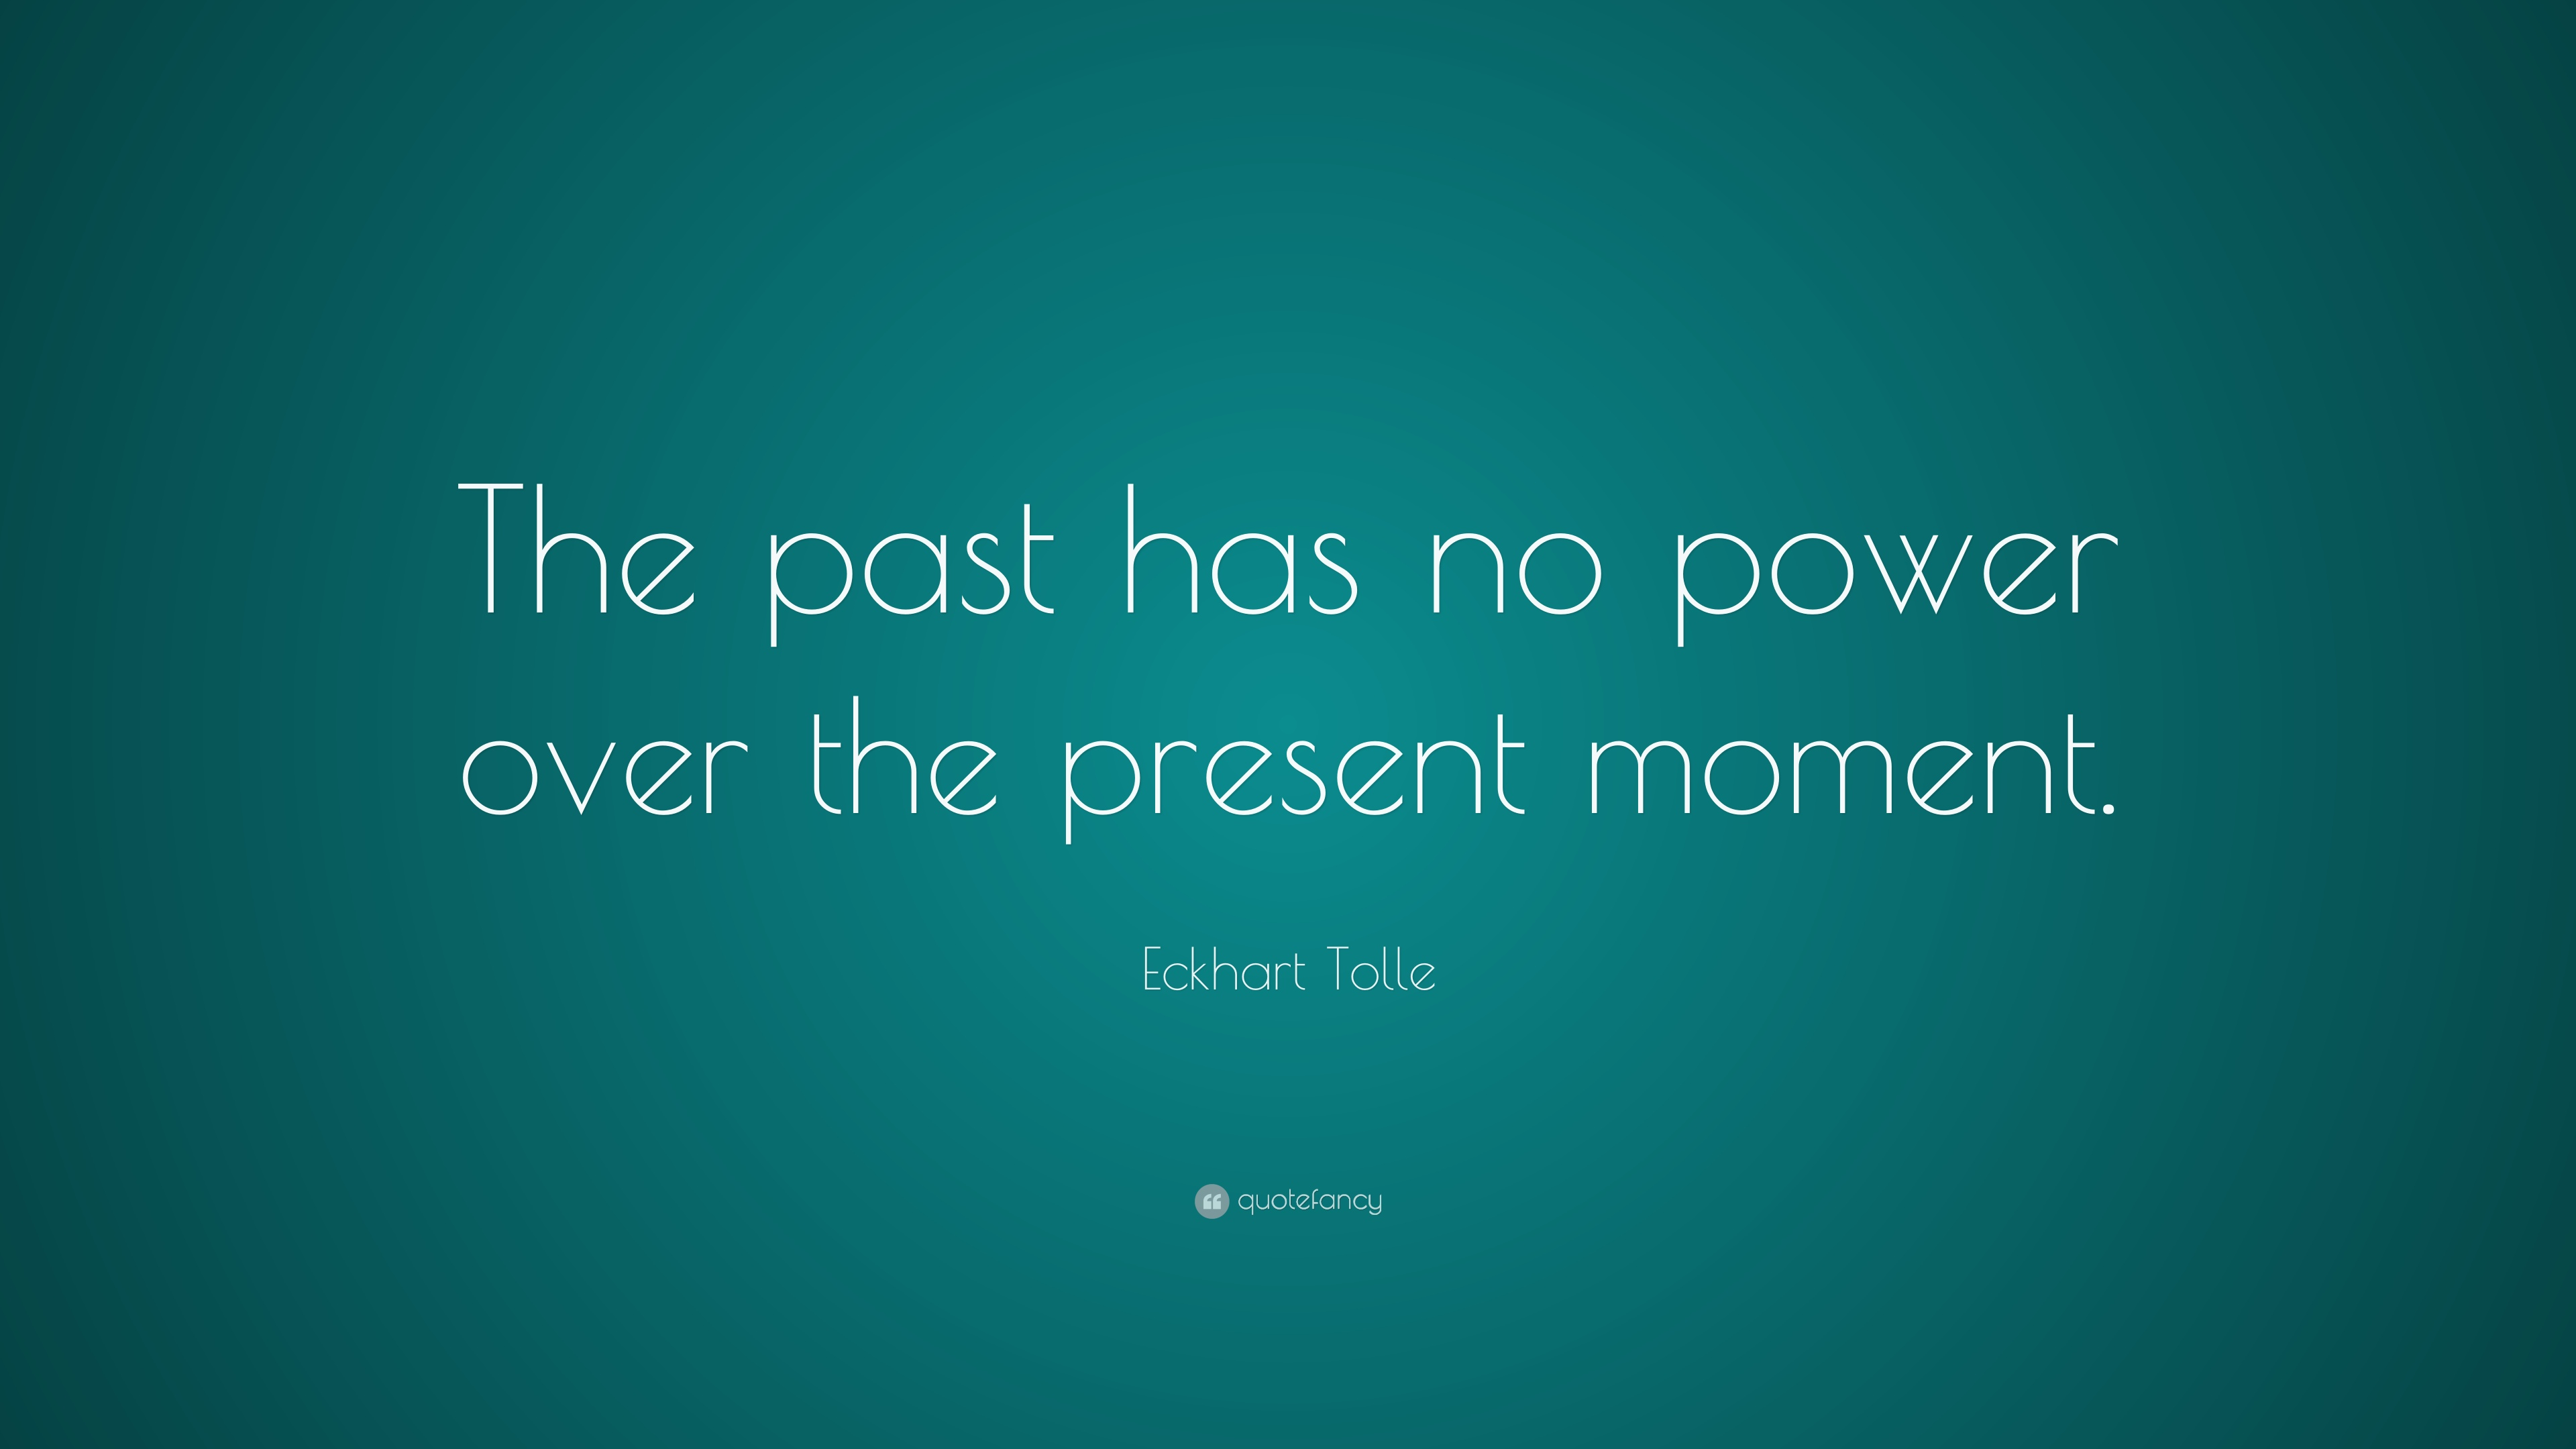 Eckhart Tolle Quote The Past Has No Power Over The Present Moment 25 Wallpapers Quotefancy